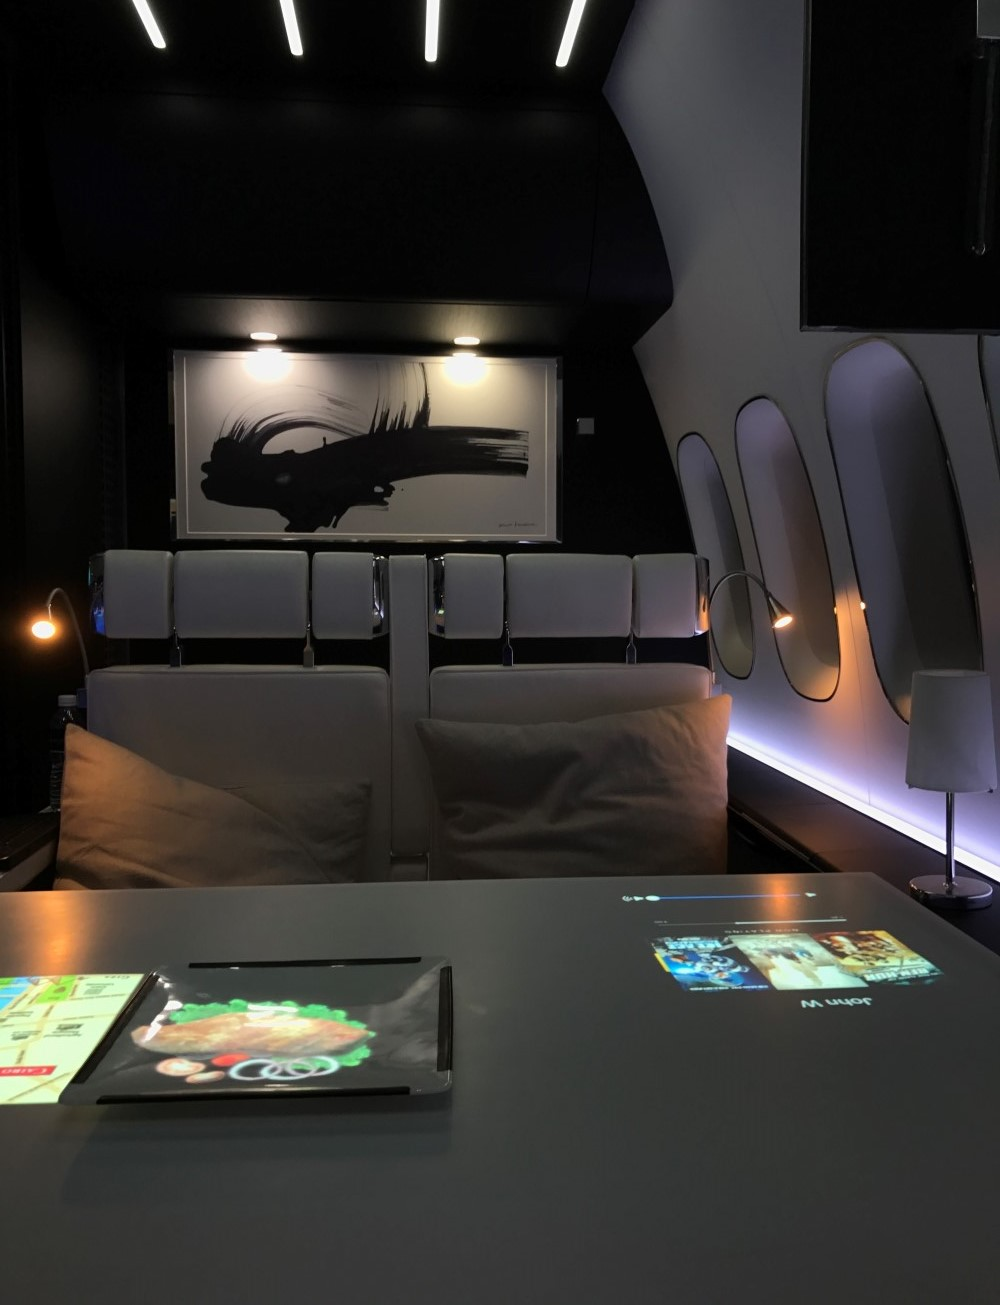 The Panasonic - JAMCO collaboration is intended to start conversations about what the future first class suite will nee, Image: John Walton